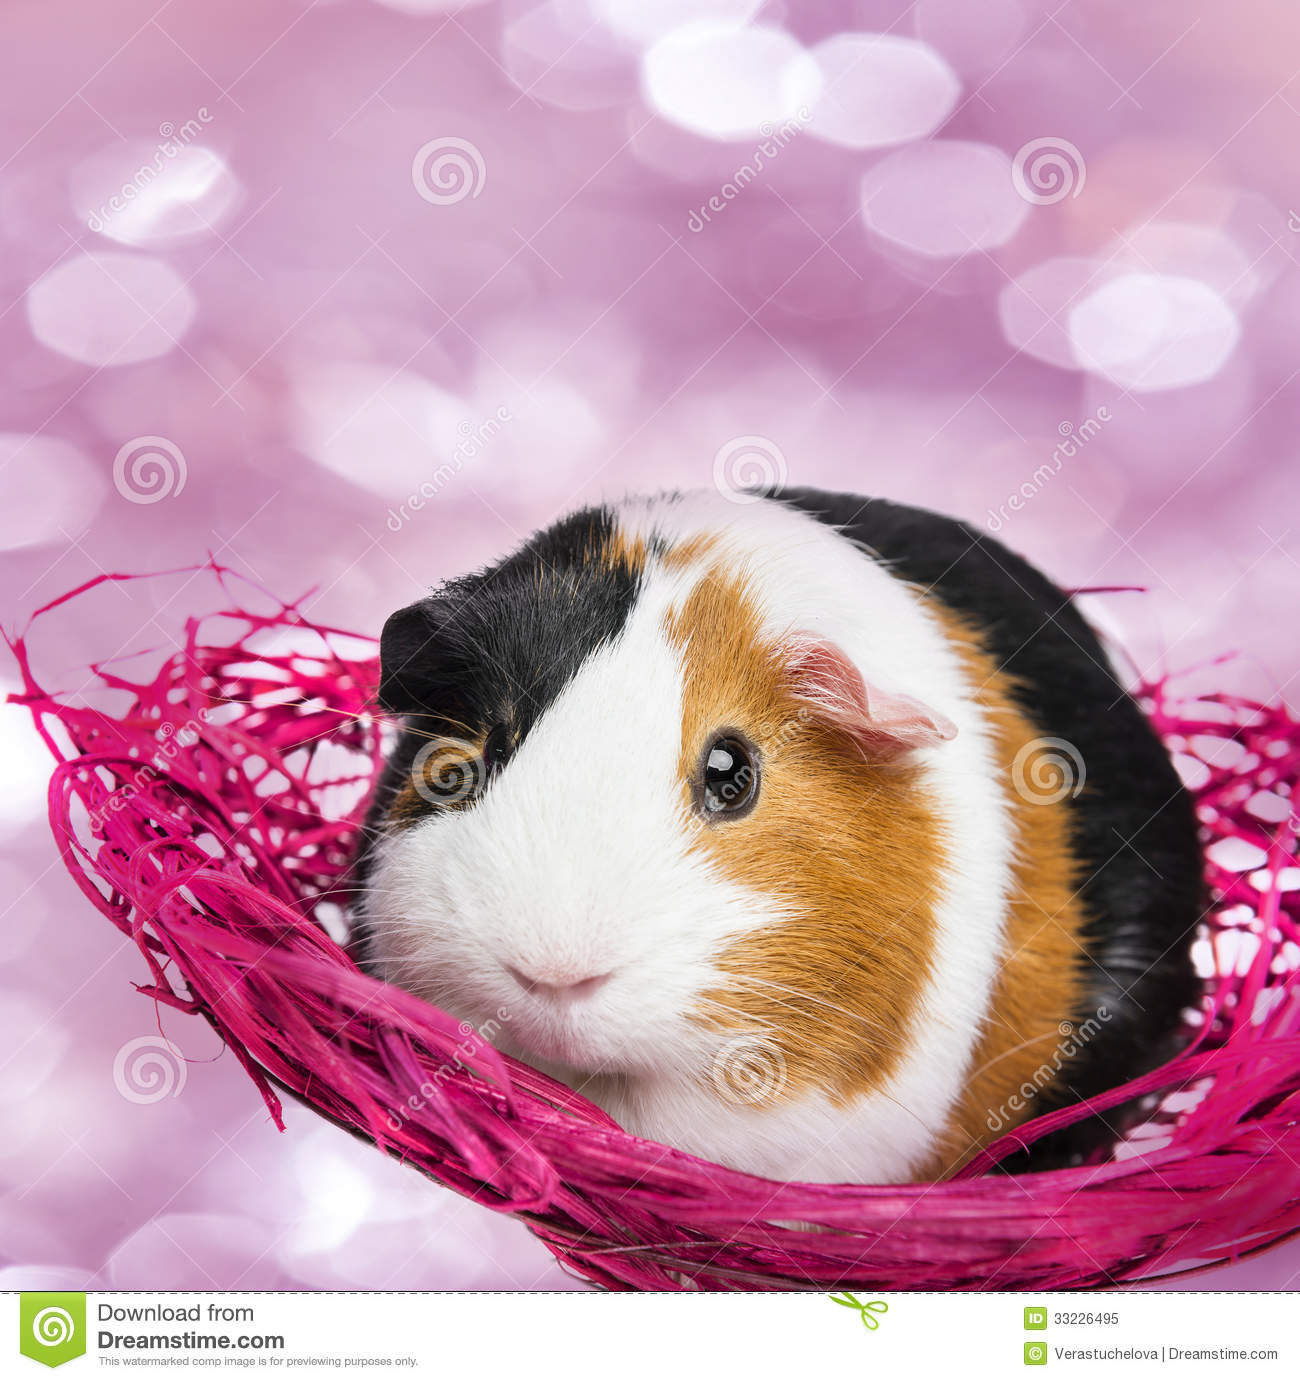 Guinea pig royalty free stock photo image 33226495 for Guinea pig pictures free